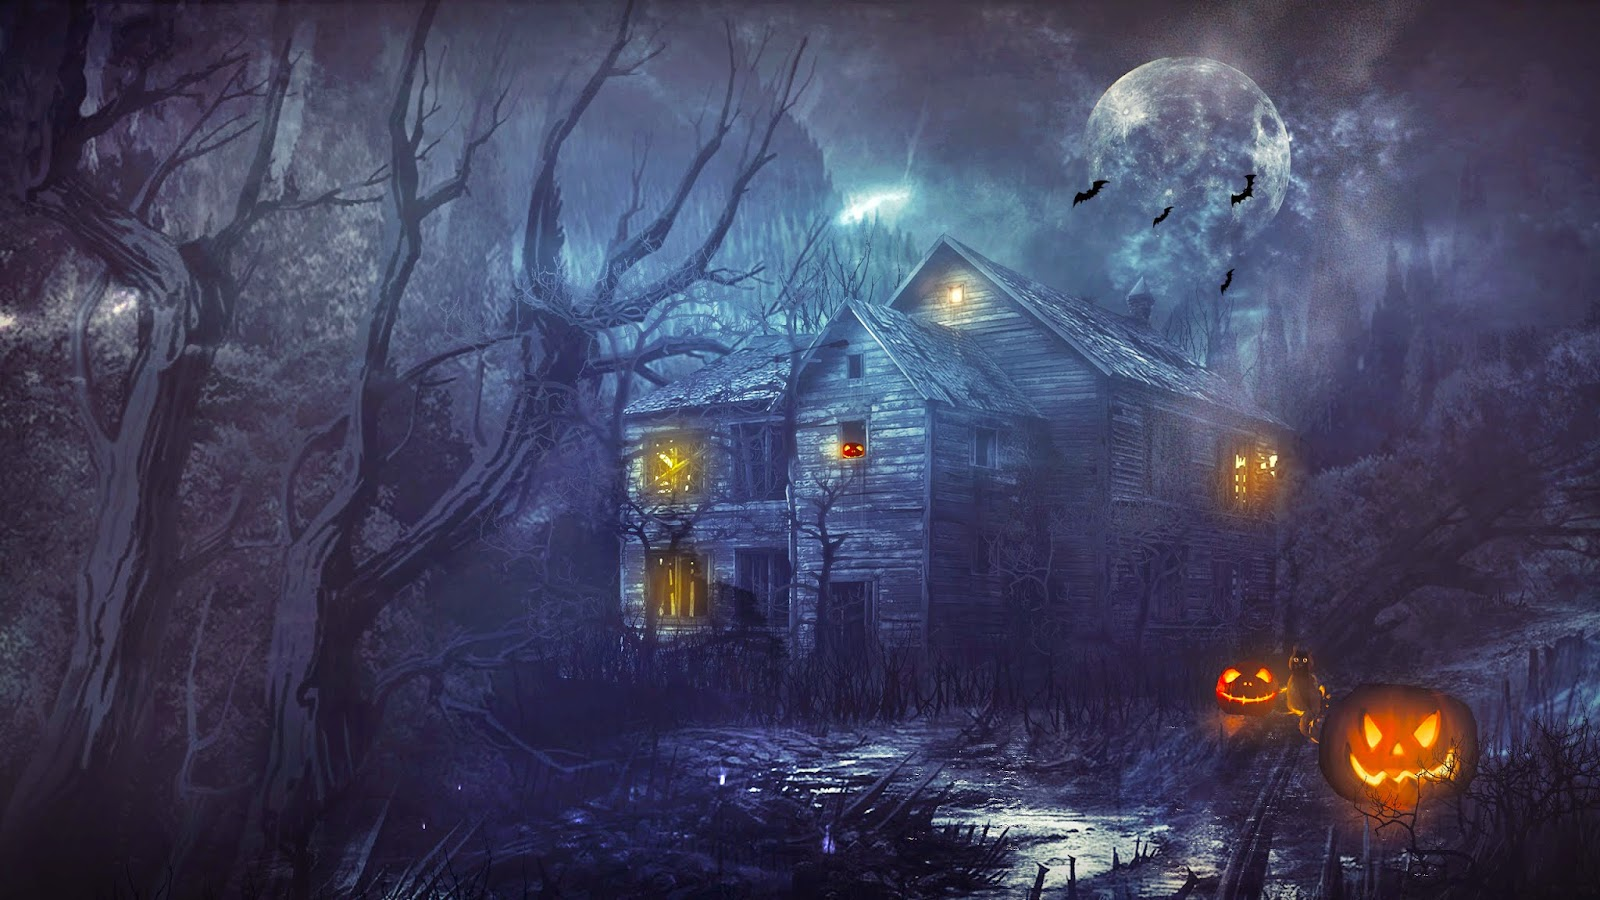 2560x1440-halloween-night-haunted-ghost-house-images-for-desktop-pc-mac-HD-free-download.jpg